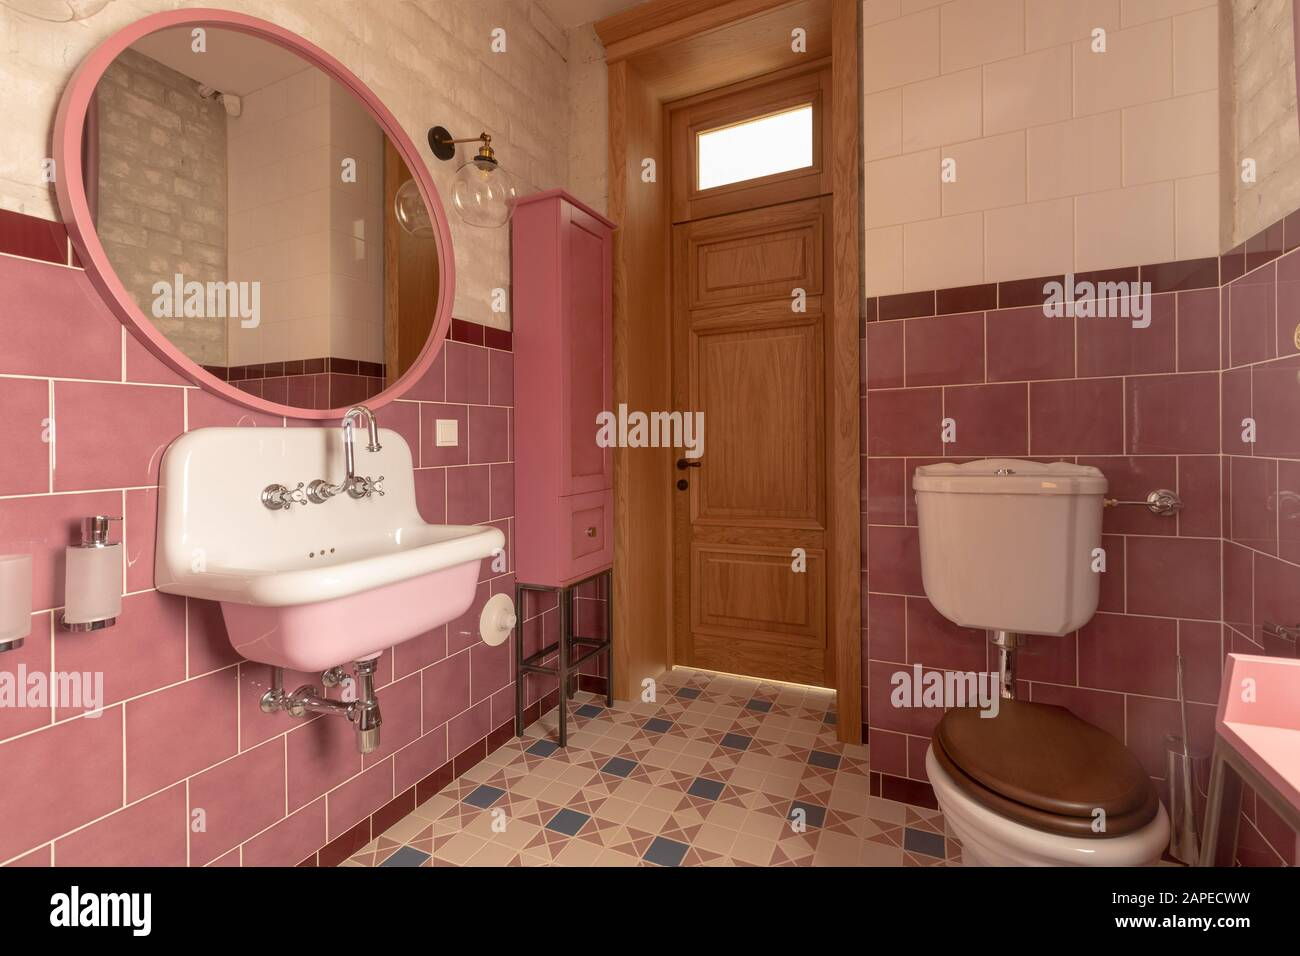 Vintage interior design of light cozy bathroom in white and pink